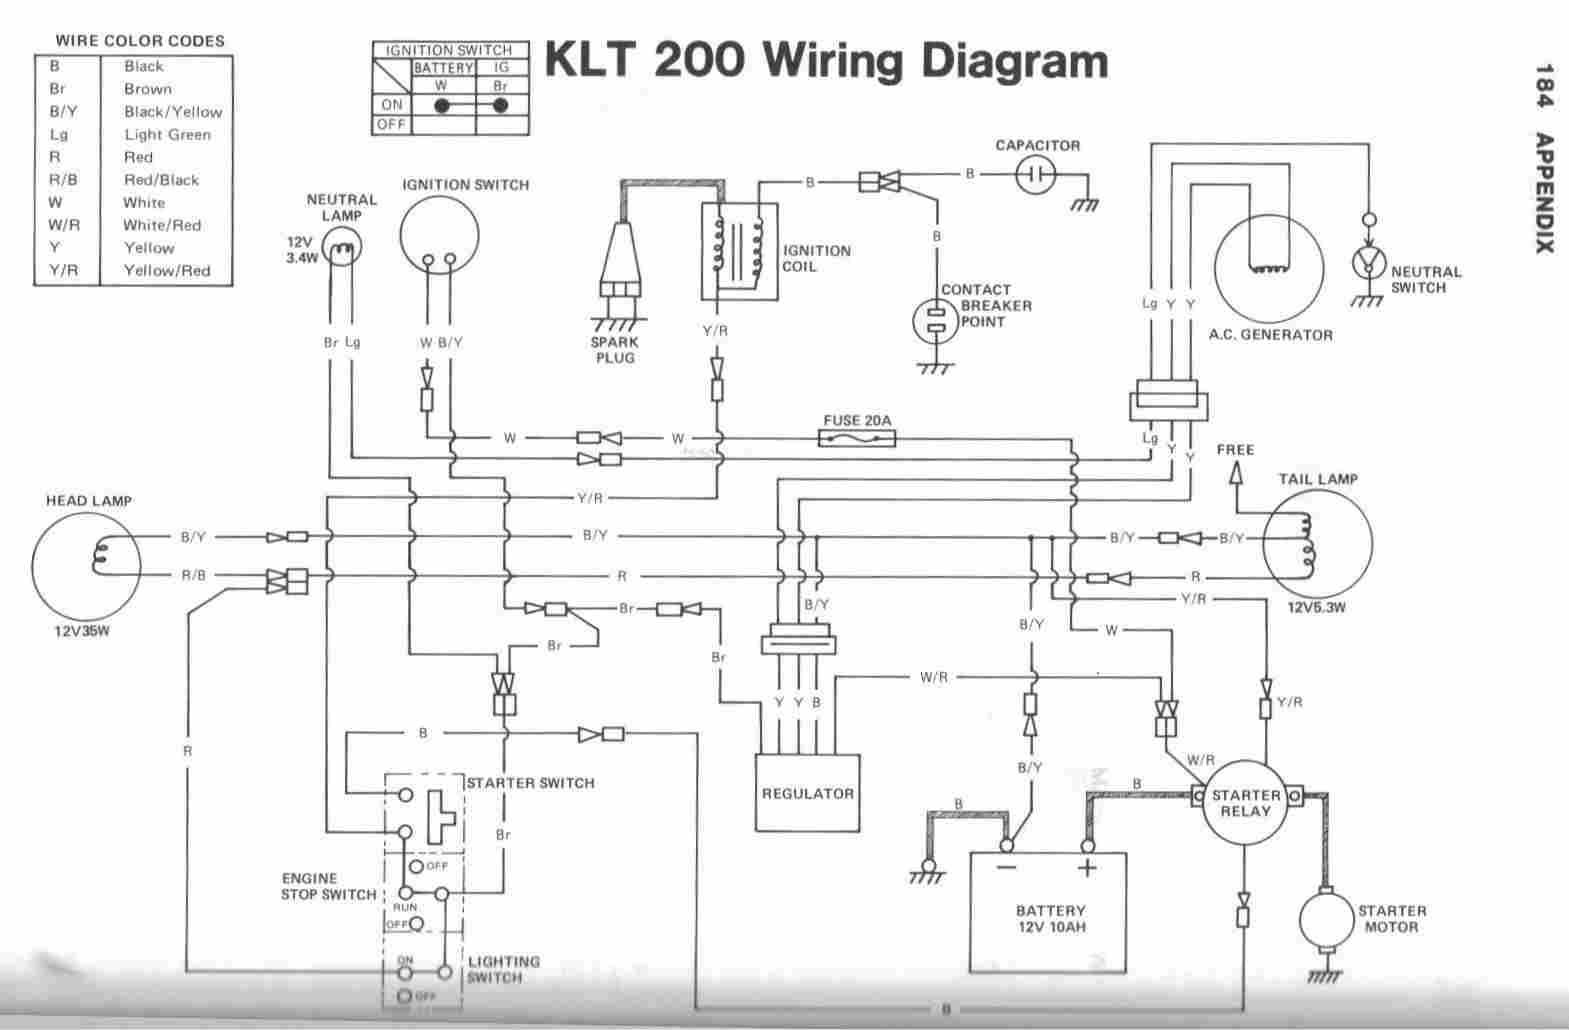 small resolution of wiring diagrams pdf wiring diagram for you industrial wiring diagrams pdf